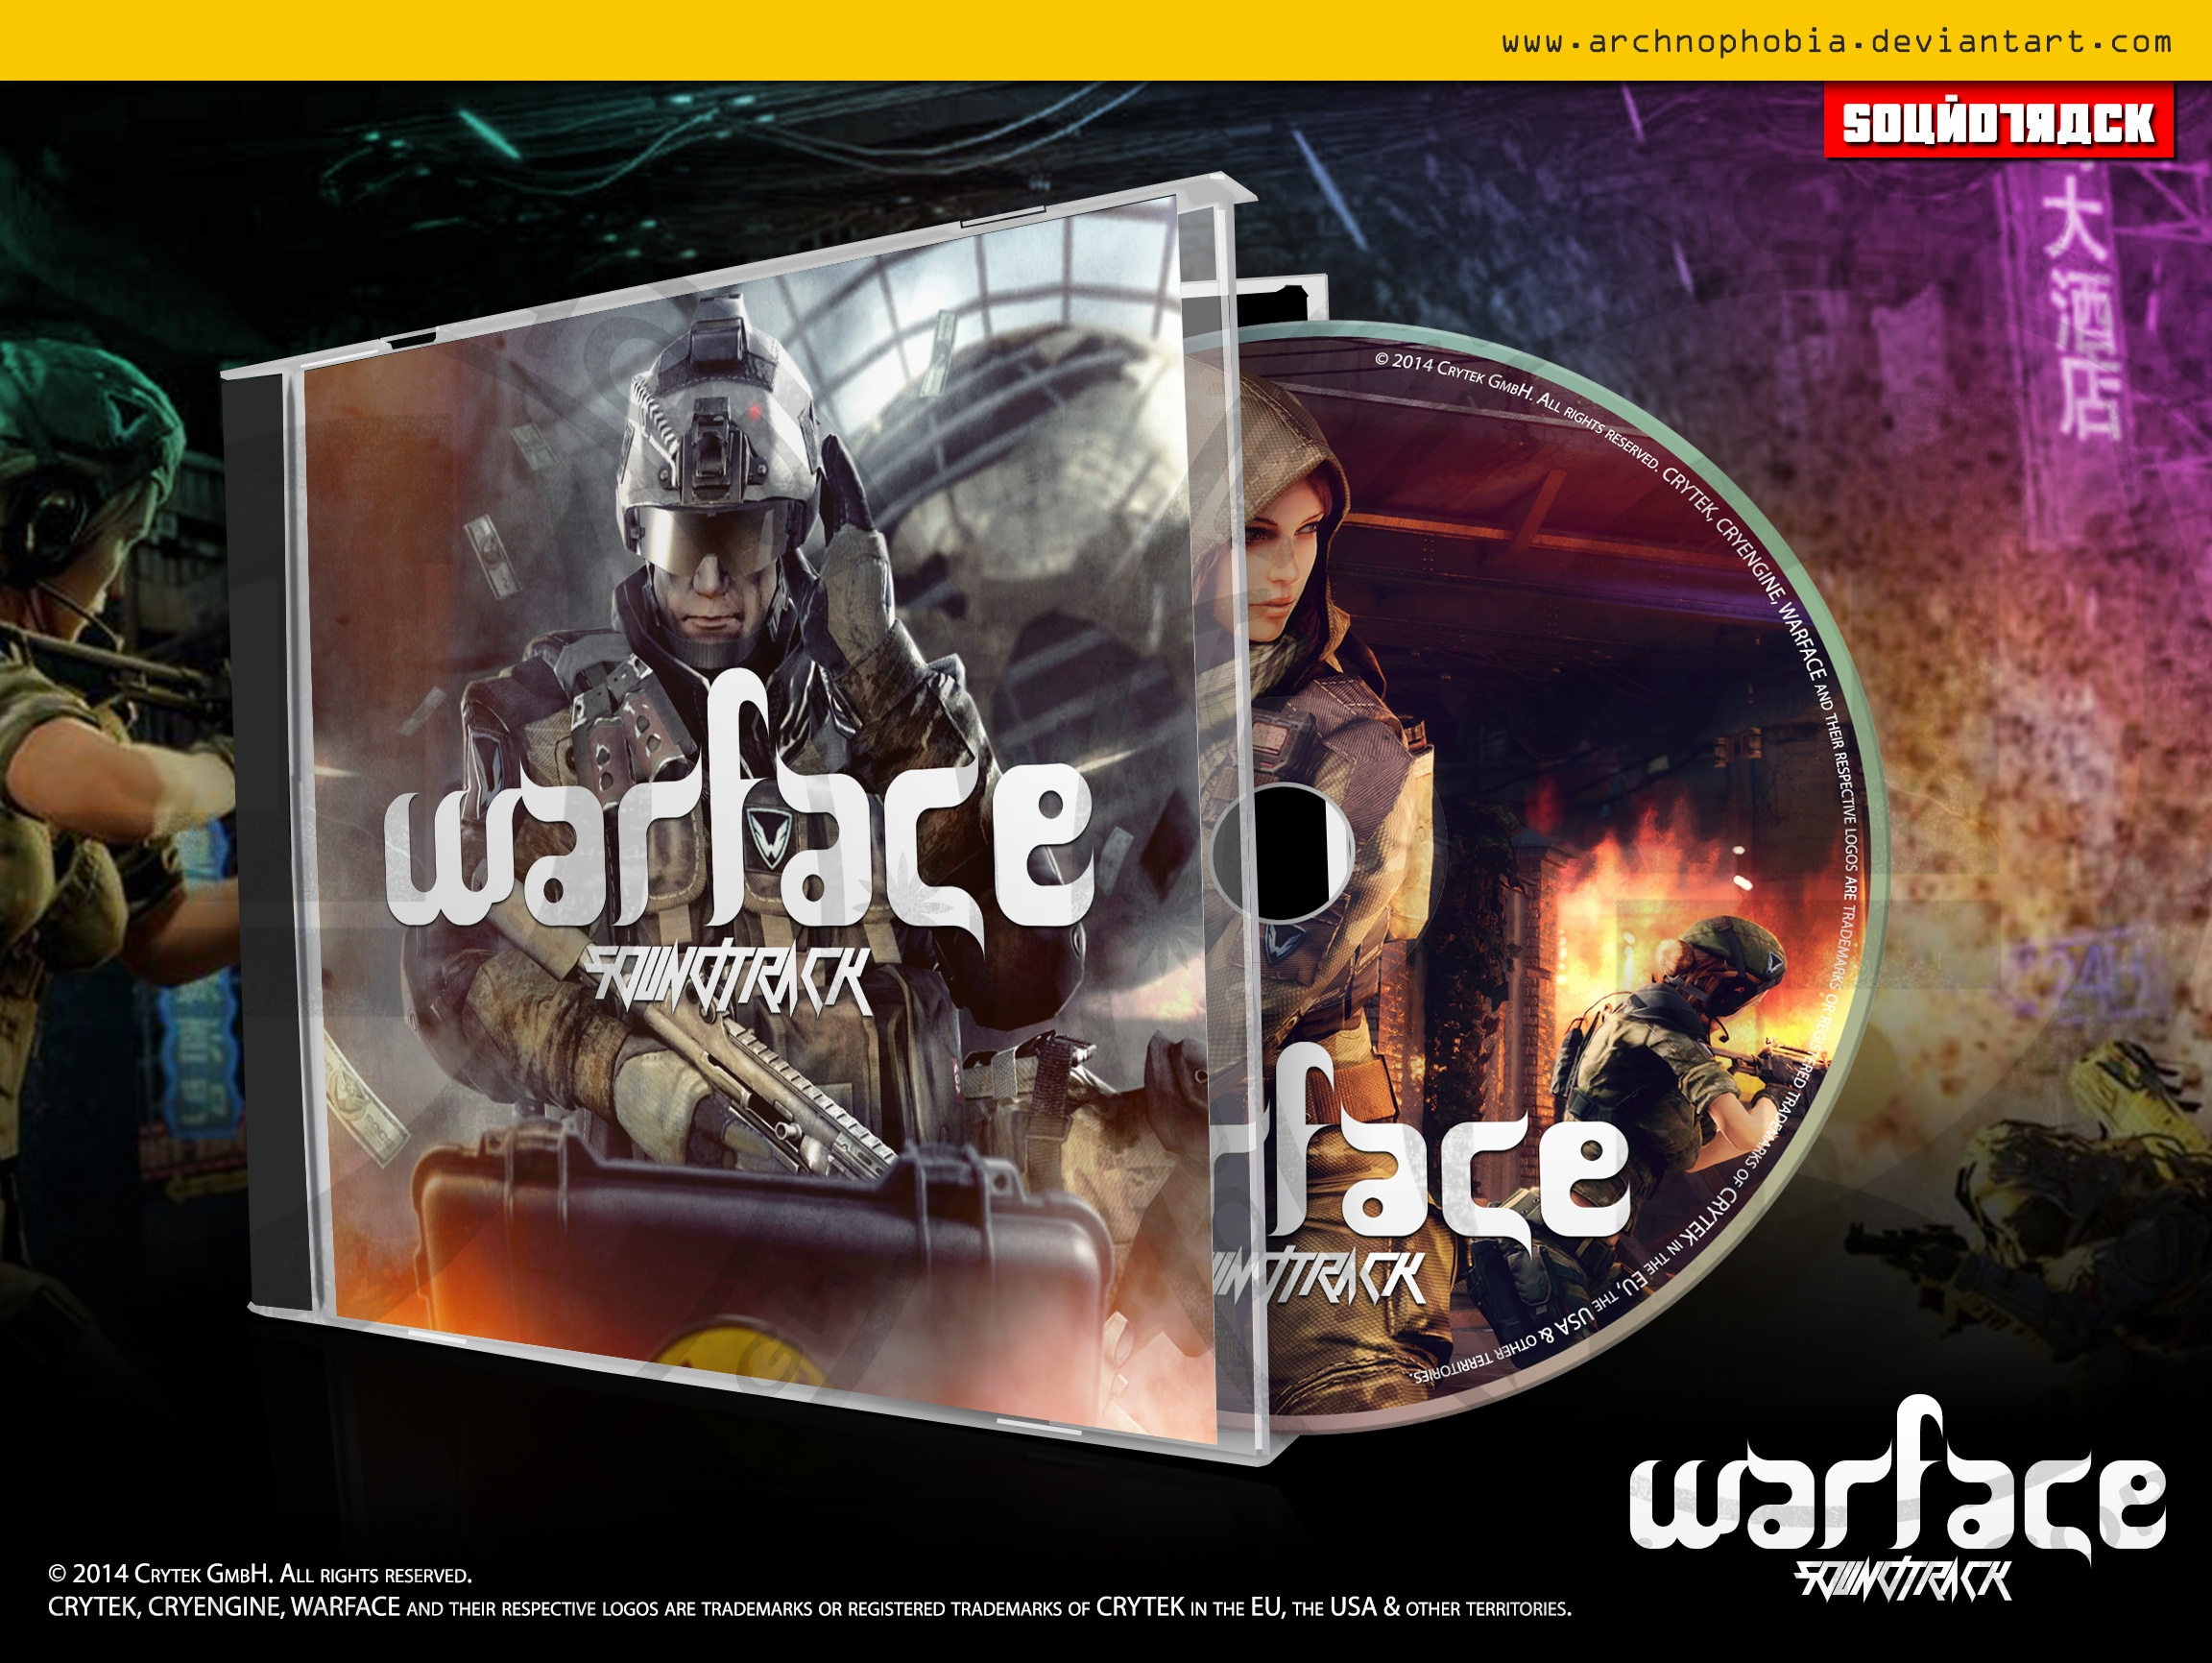 WarFace (SoundTrack) box cover